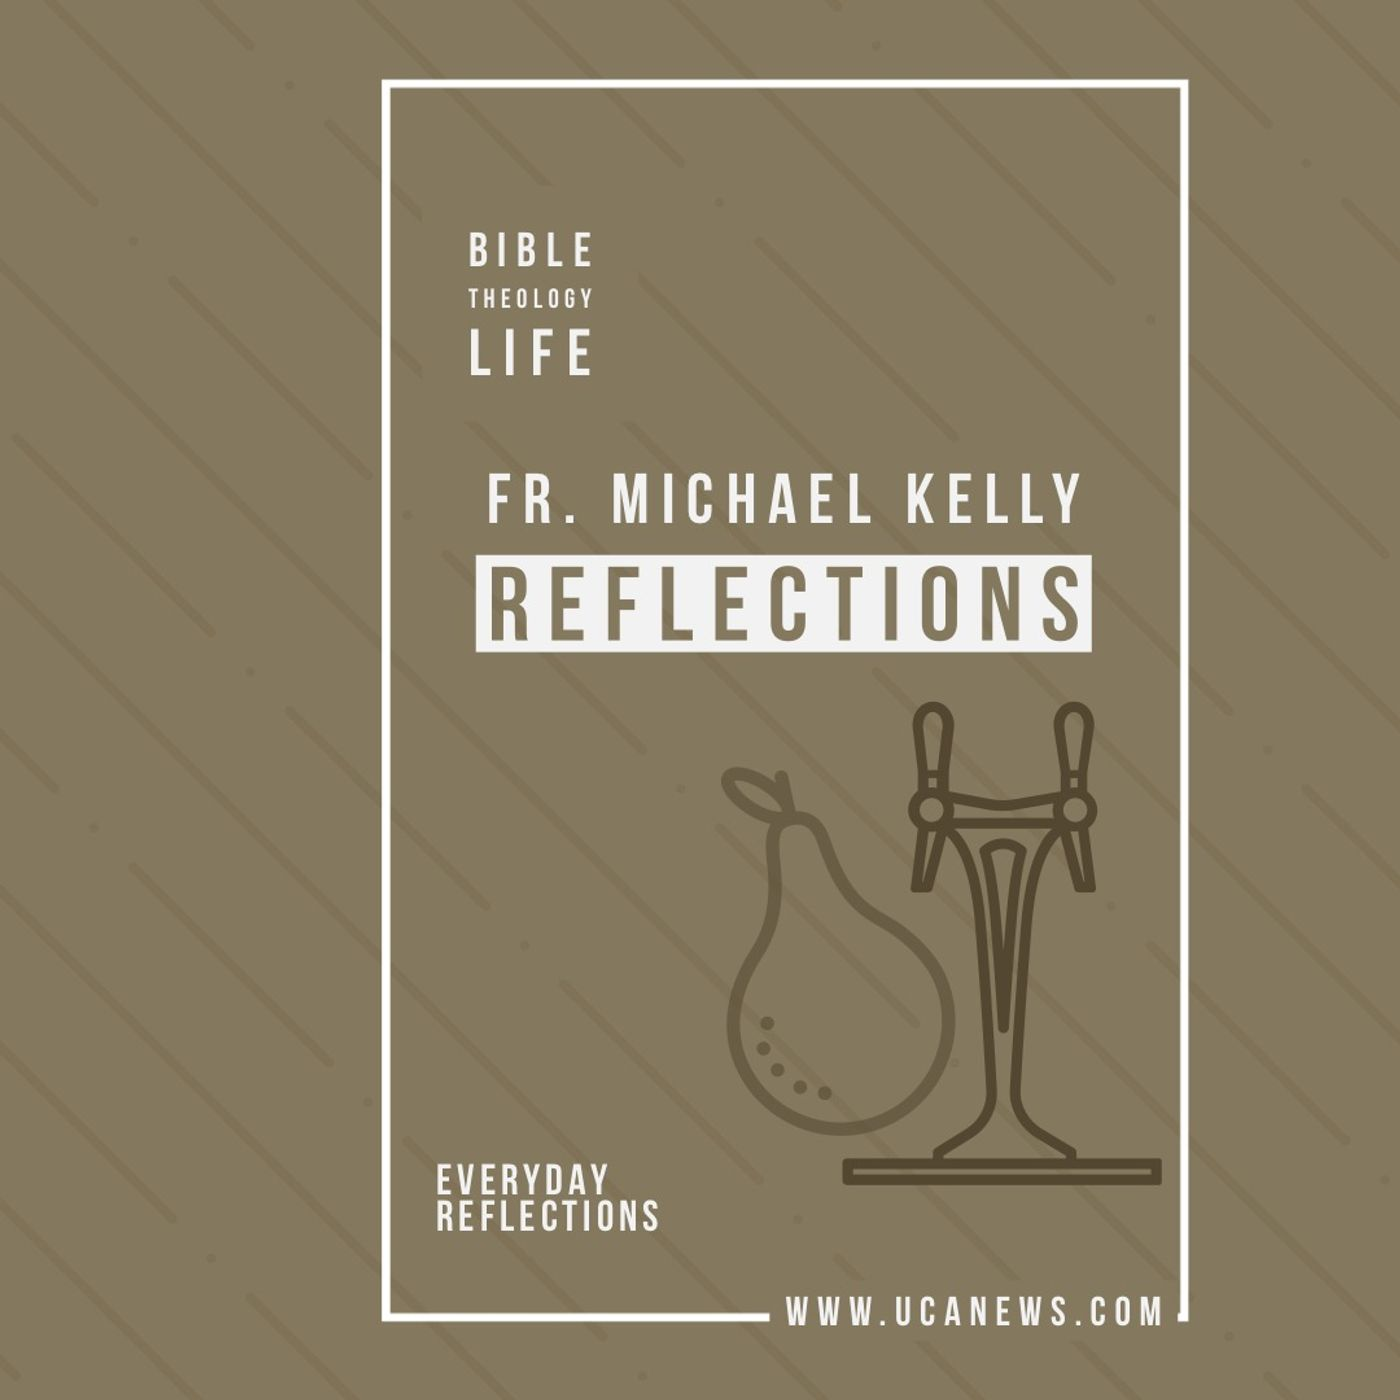 Reflections with Fr. Michael Kelly - Friday 16 Apr, 2021